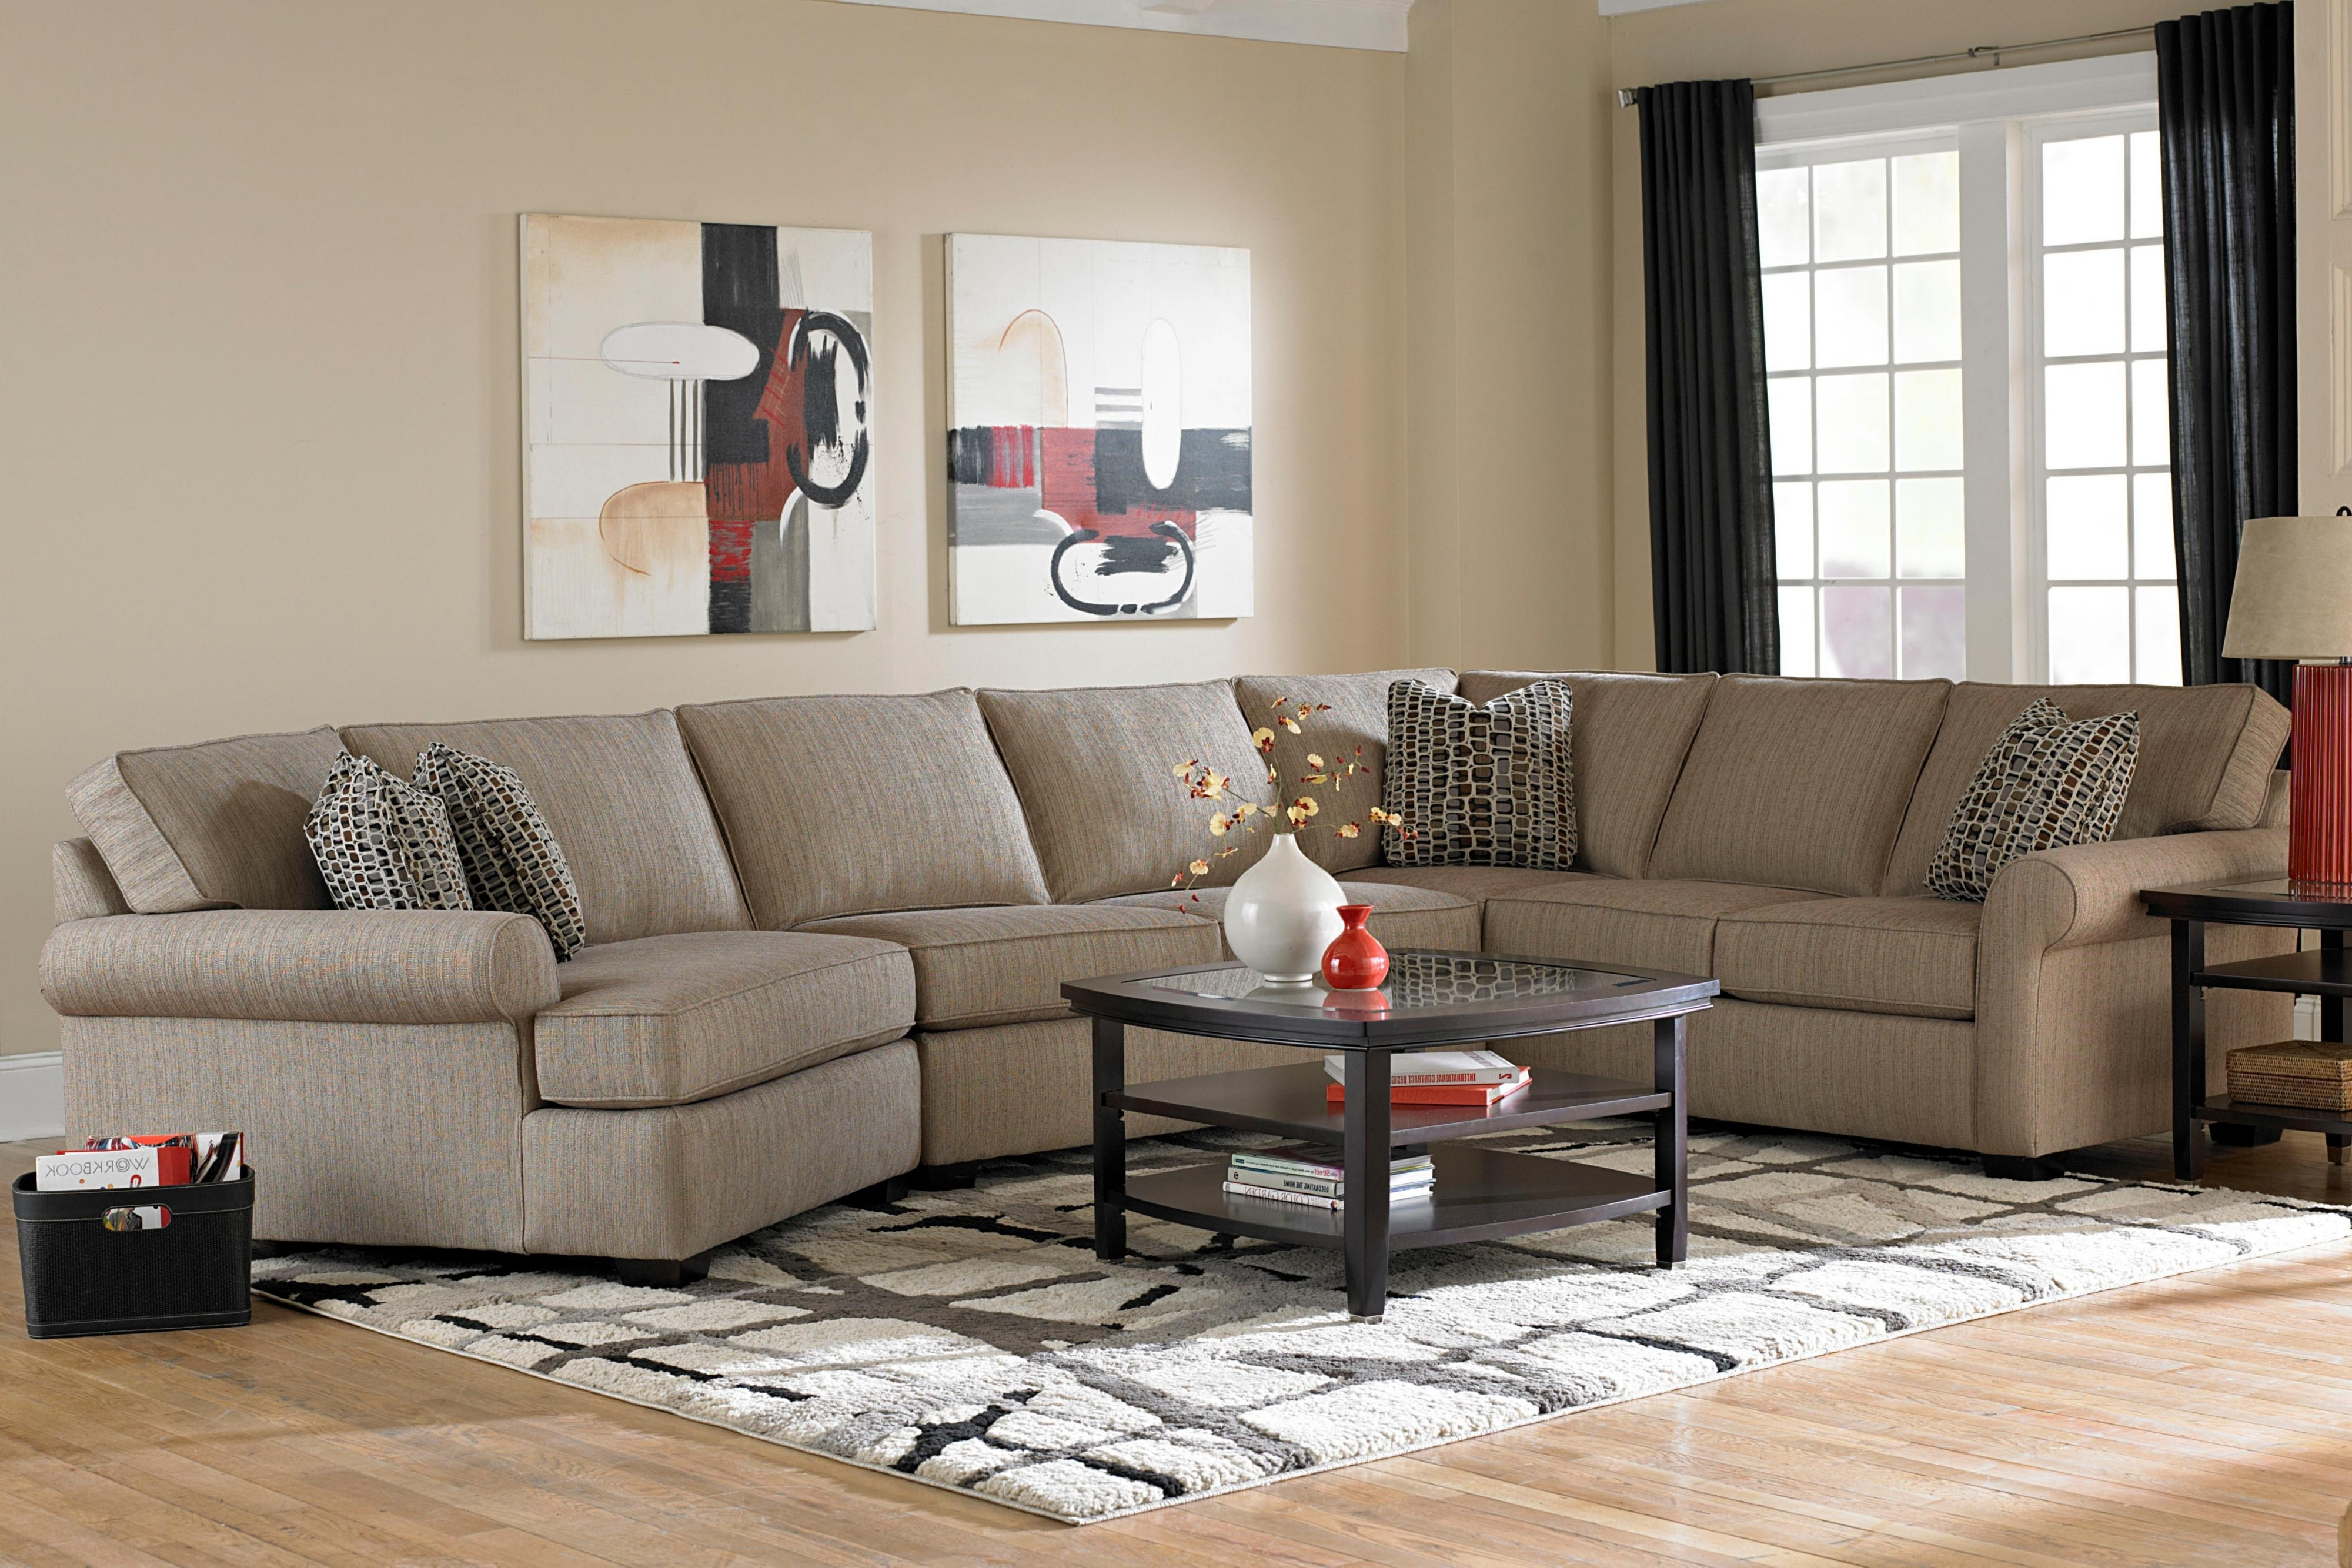 Sectional Sofas In North Carolina Throughout Widely Used Broyhill Furniture Ethan Transitional Sectional Sofa With Right (View 14 of 15)